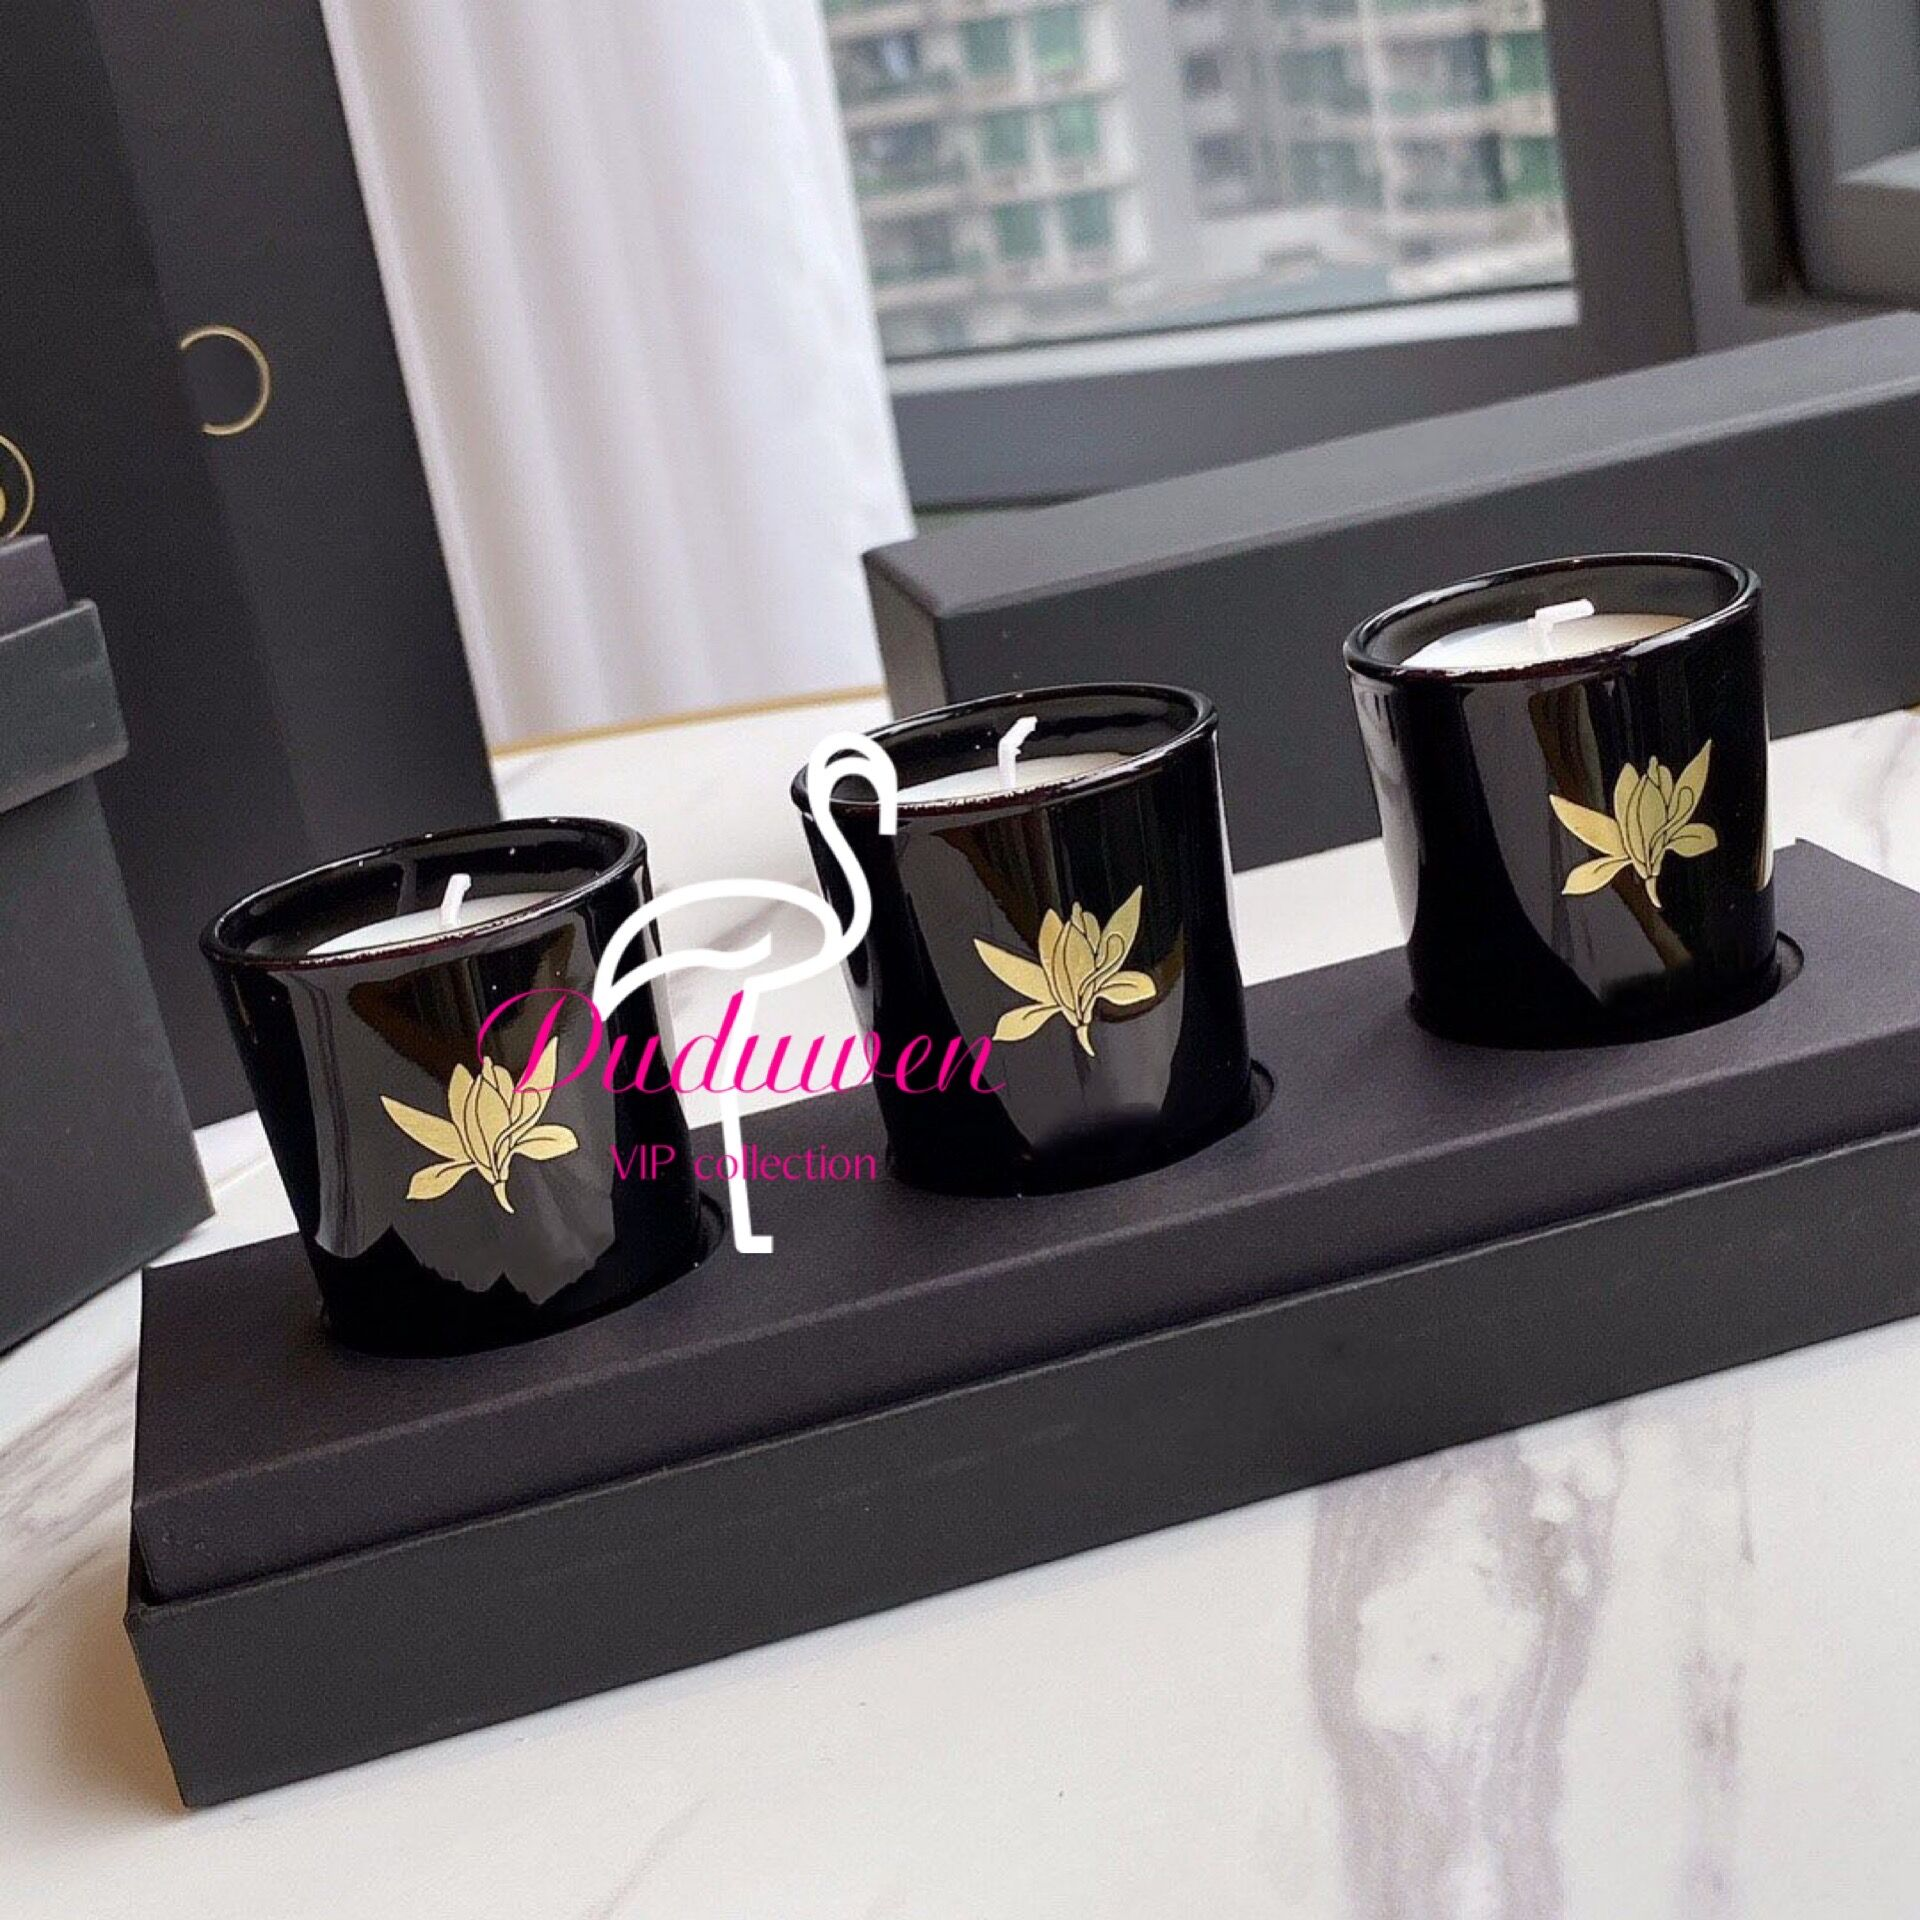 gift box set of 3 candles scented candle vip colllection C Home Decoration xmas gift